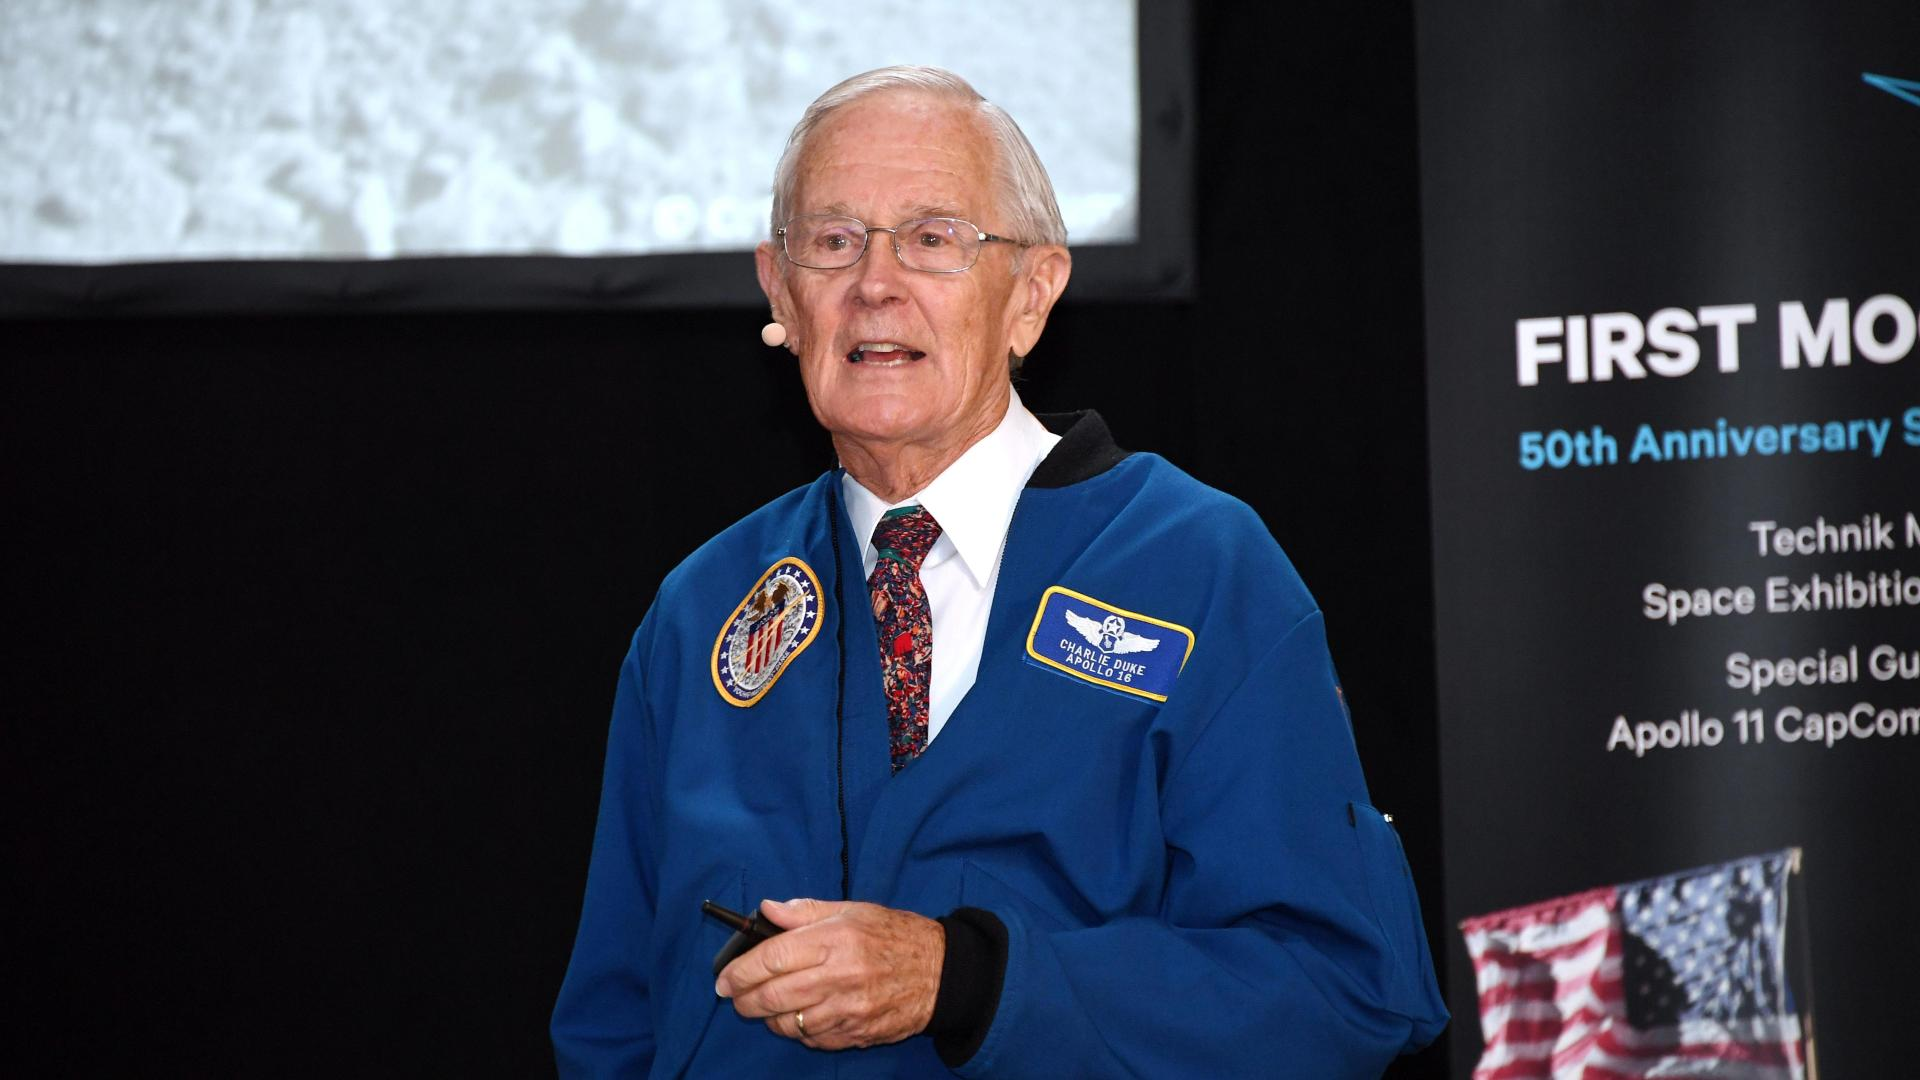 Apollo-11-CapCom und Apollo-16-Moonwalker Charles M. Duke Jr.